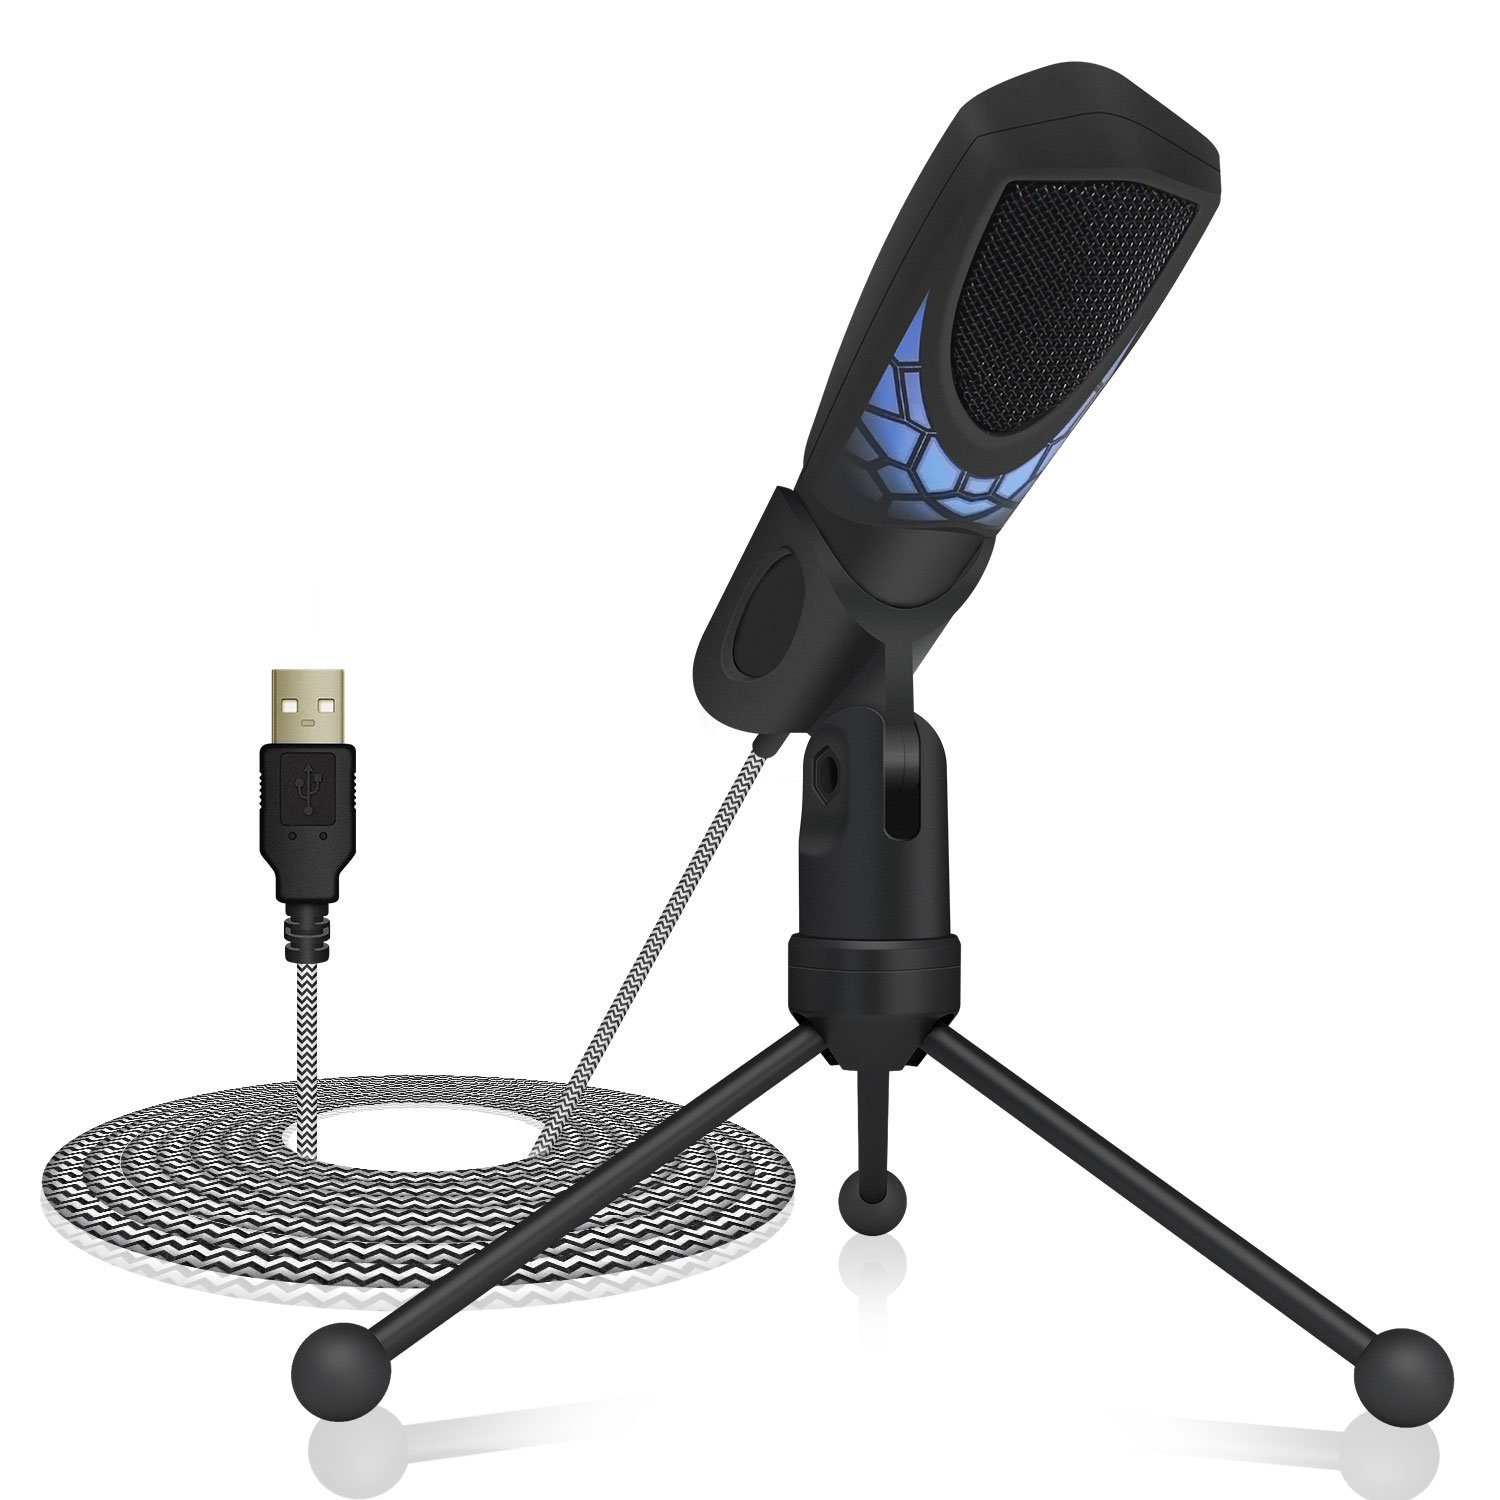 TONOR USB Microphone Computer Condenser Mic Plug and Play for Chatting/Skype/Facetime/Youtube/Recording/Singing/Podcasting for iMAC PC Laptop Desktop Windows Computer